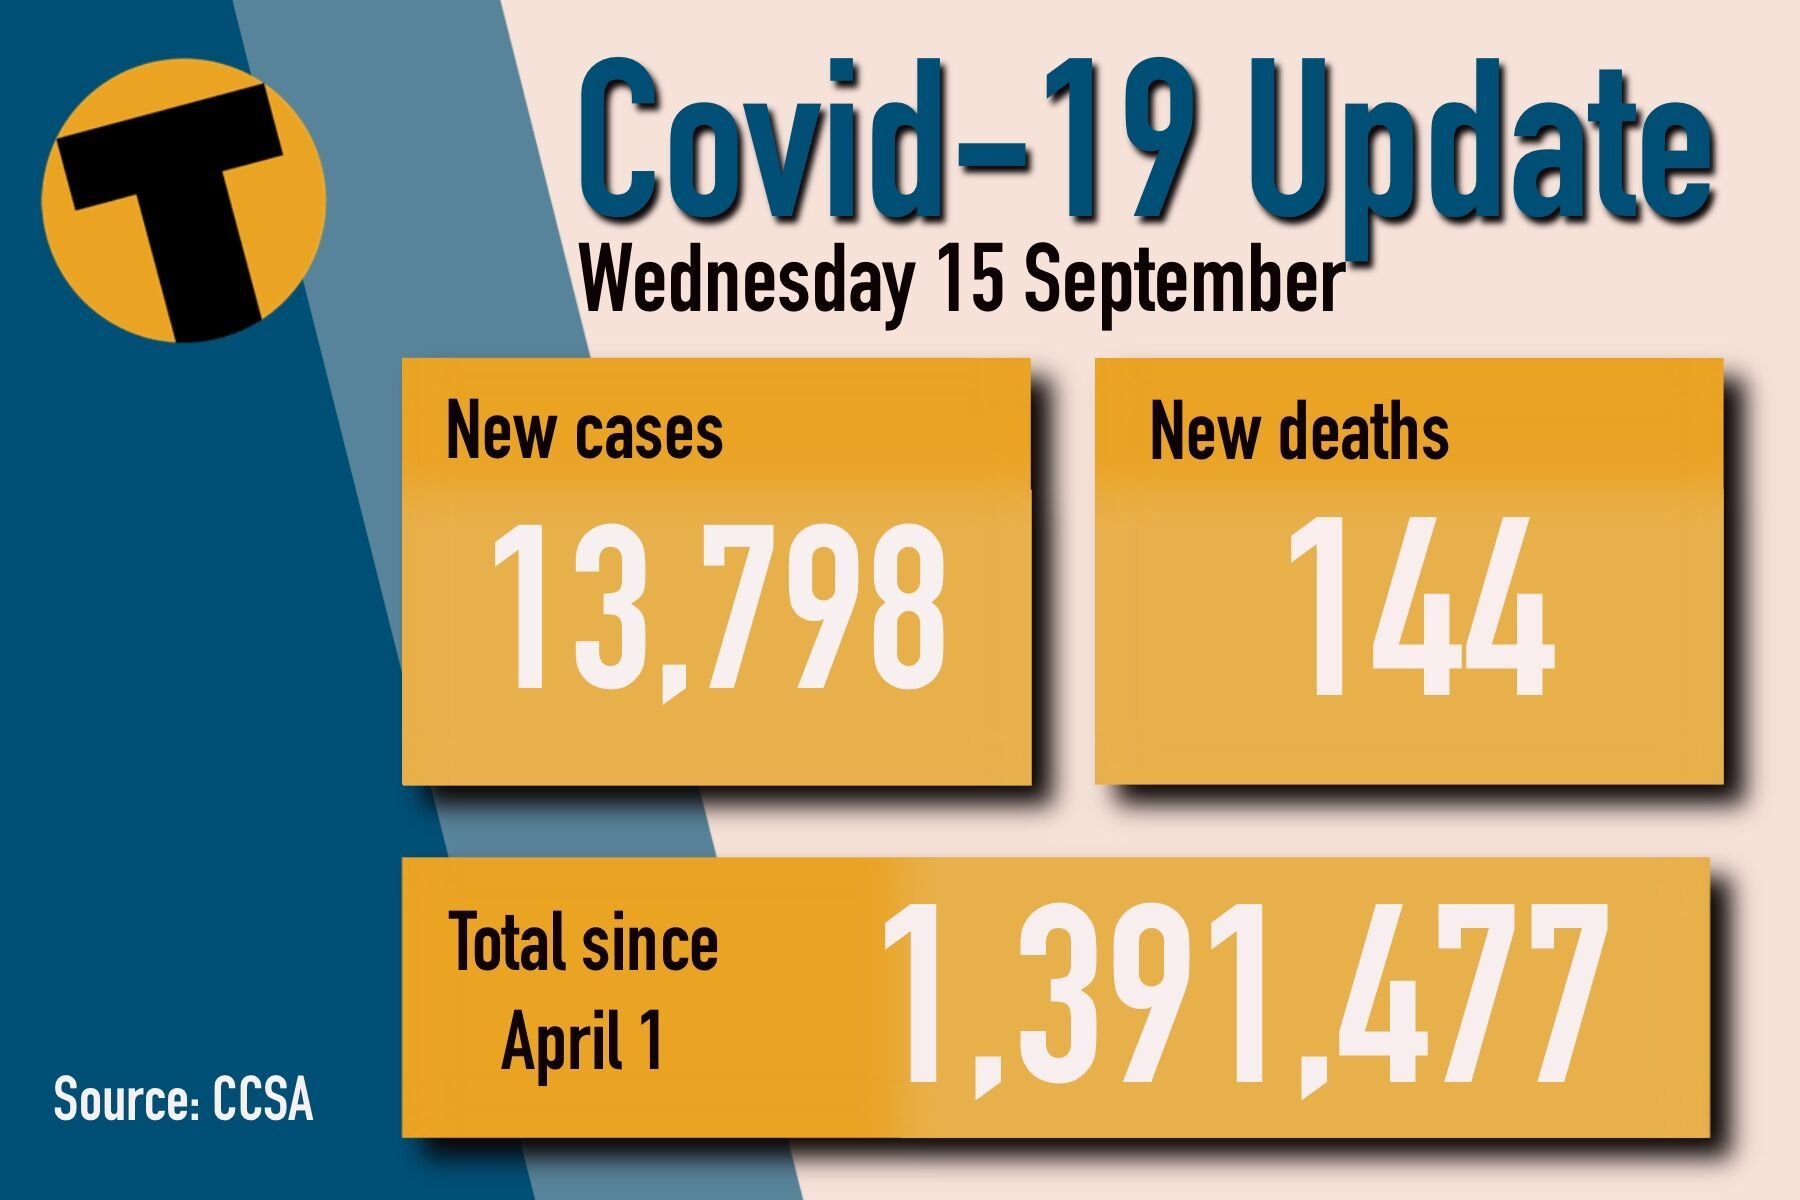 Wednesday Covid Update: 144 deaths and 13,798 new cases | News by Thaiger